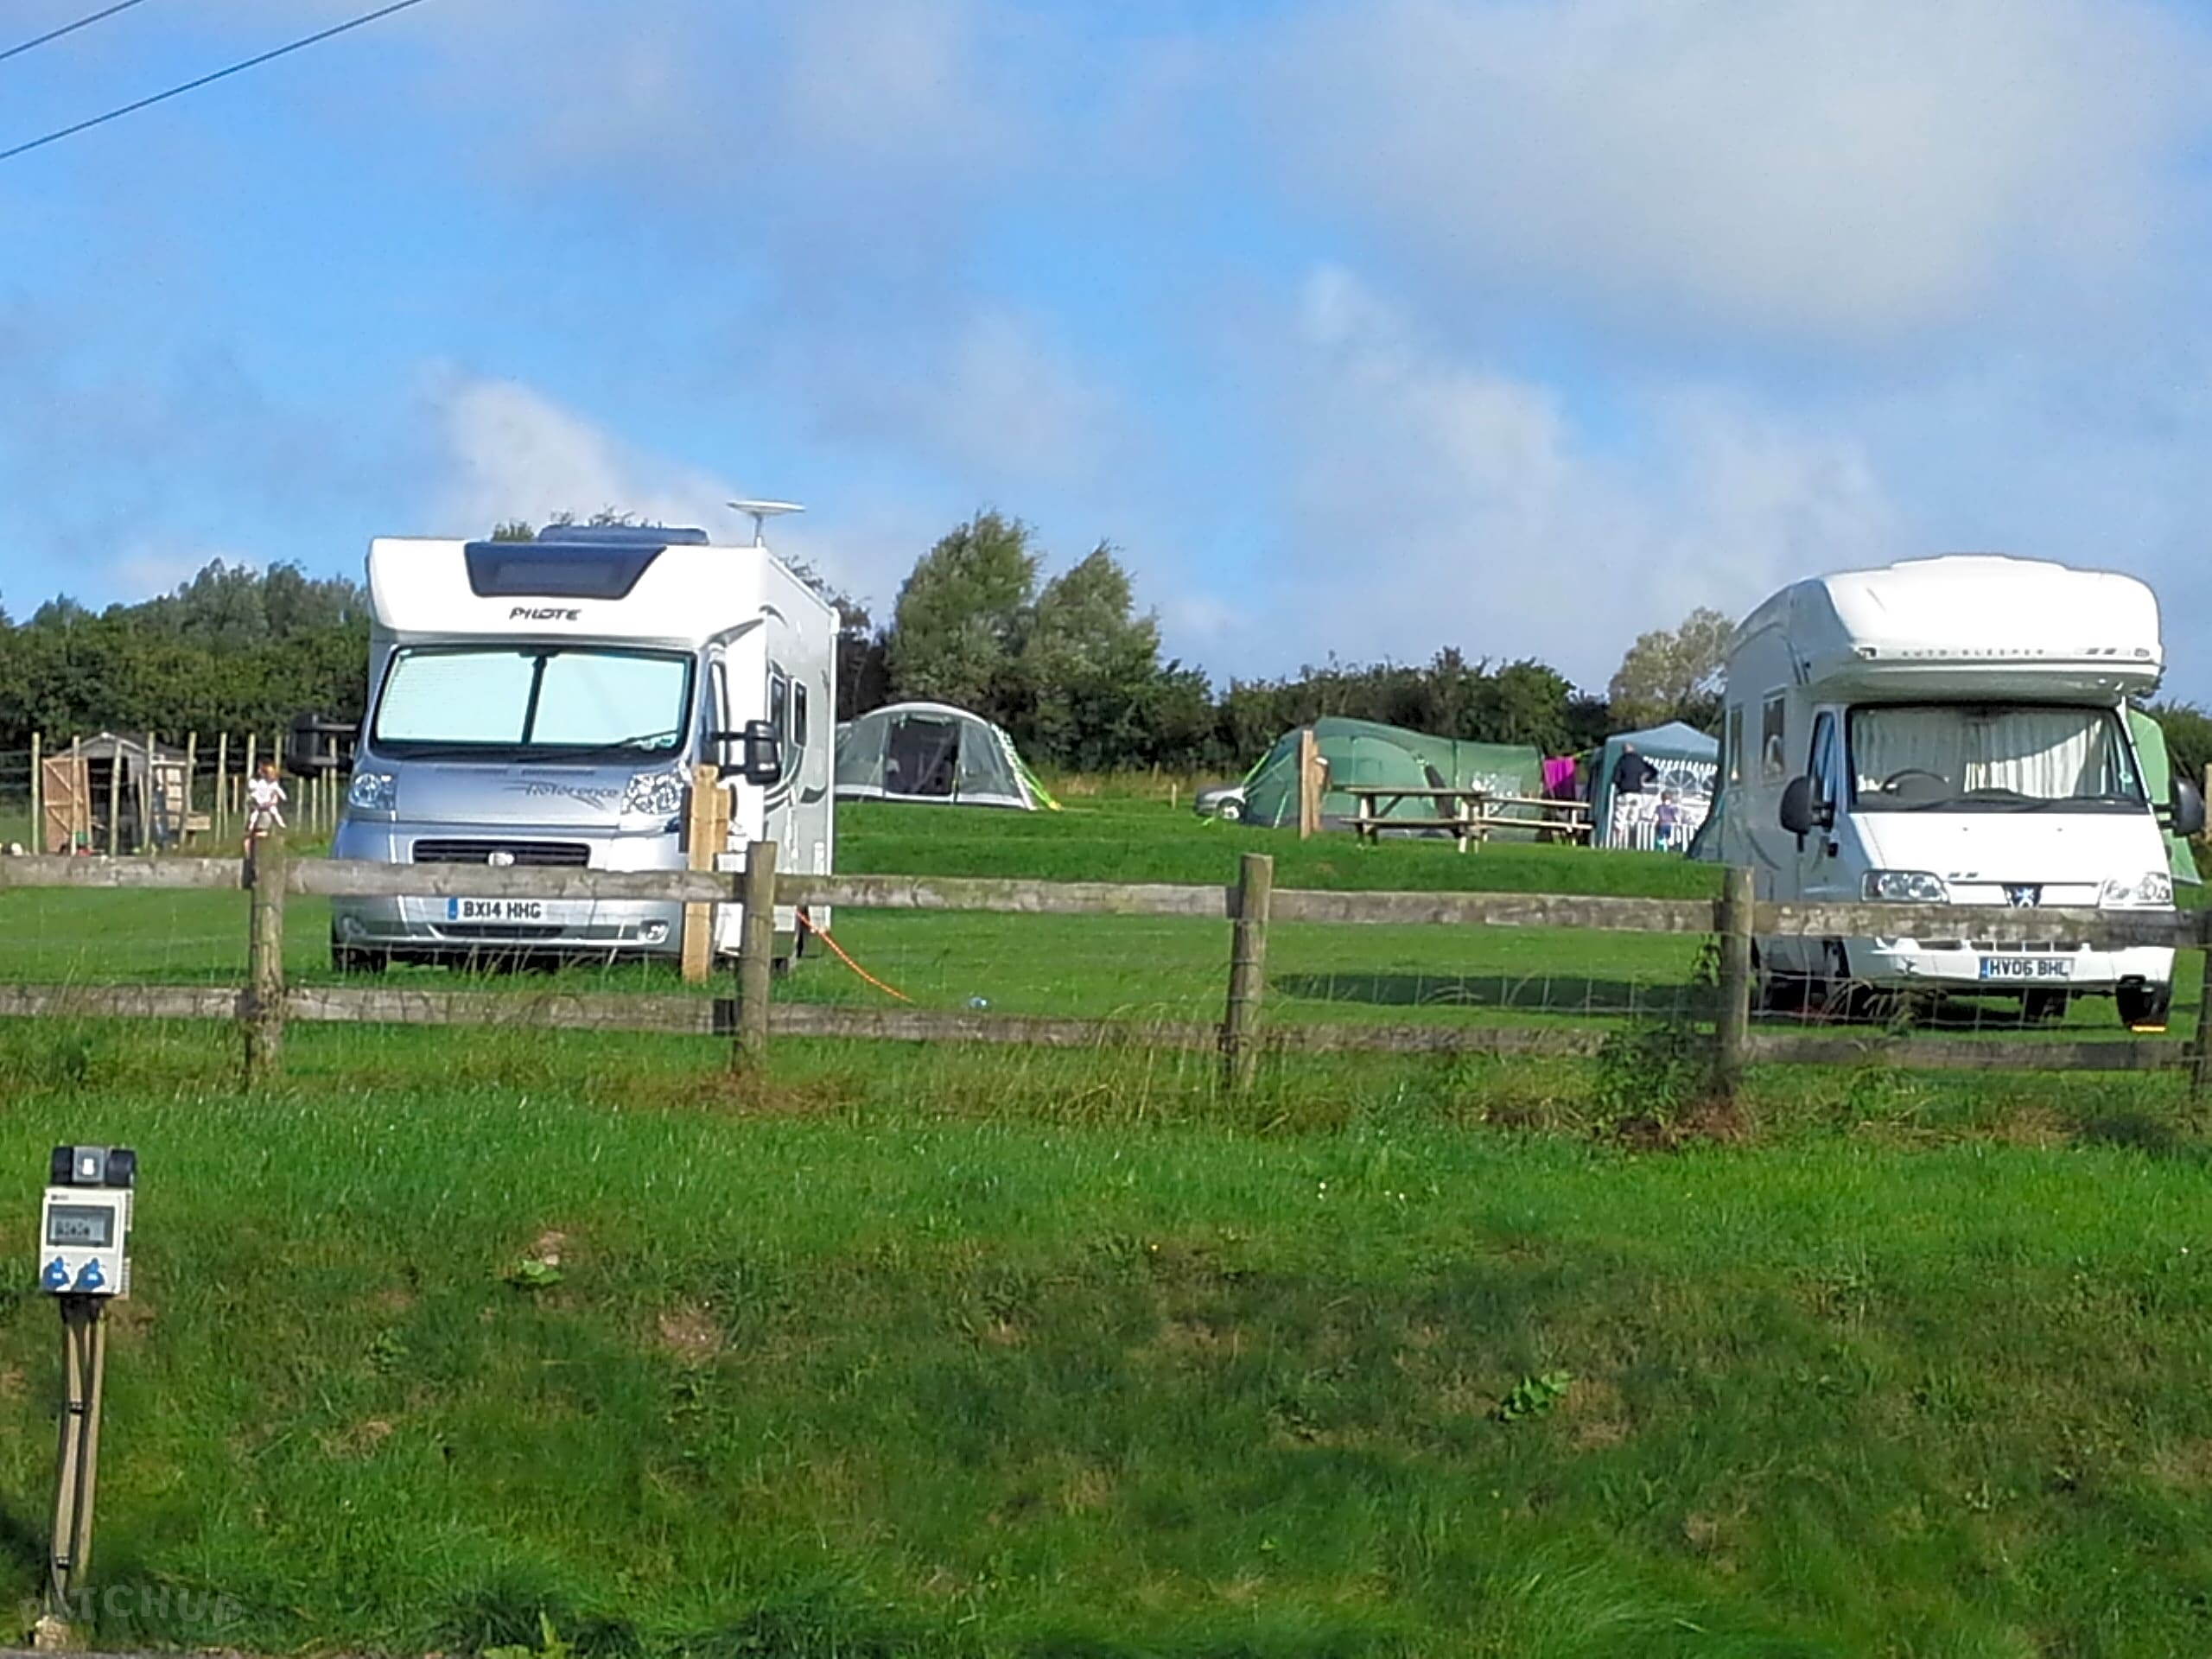 Broad Park Camping Bideford Updated 2019 Prices Pitchup